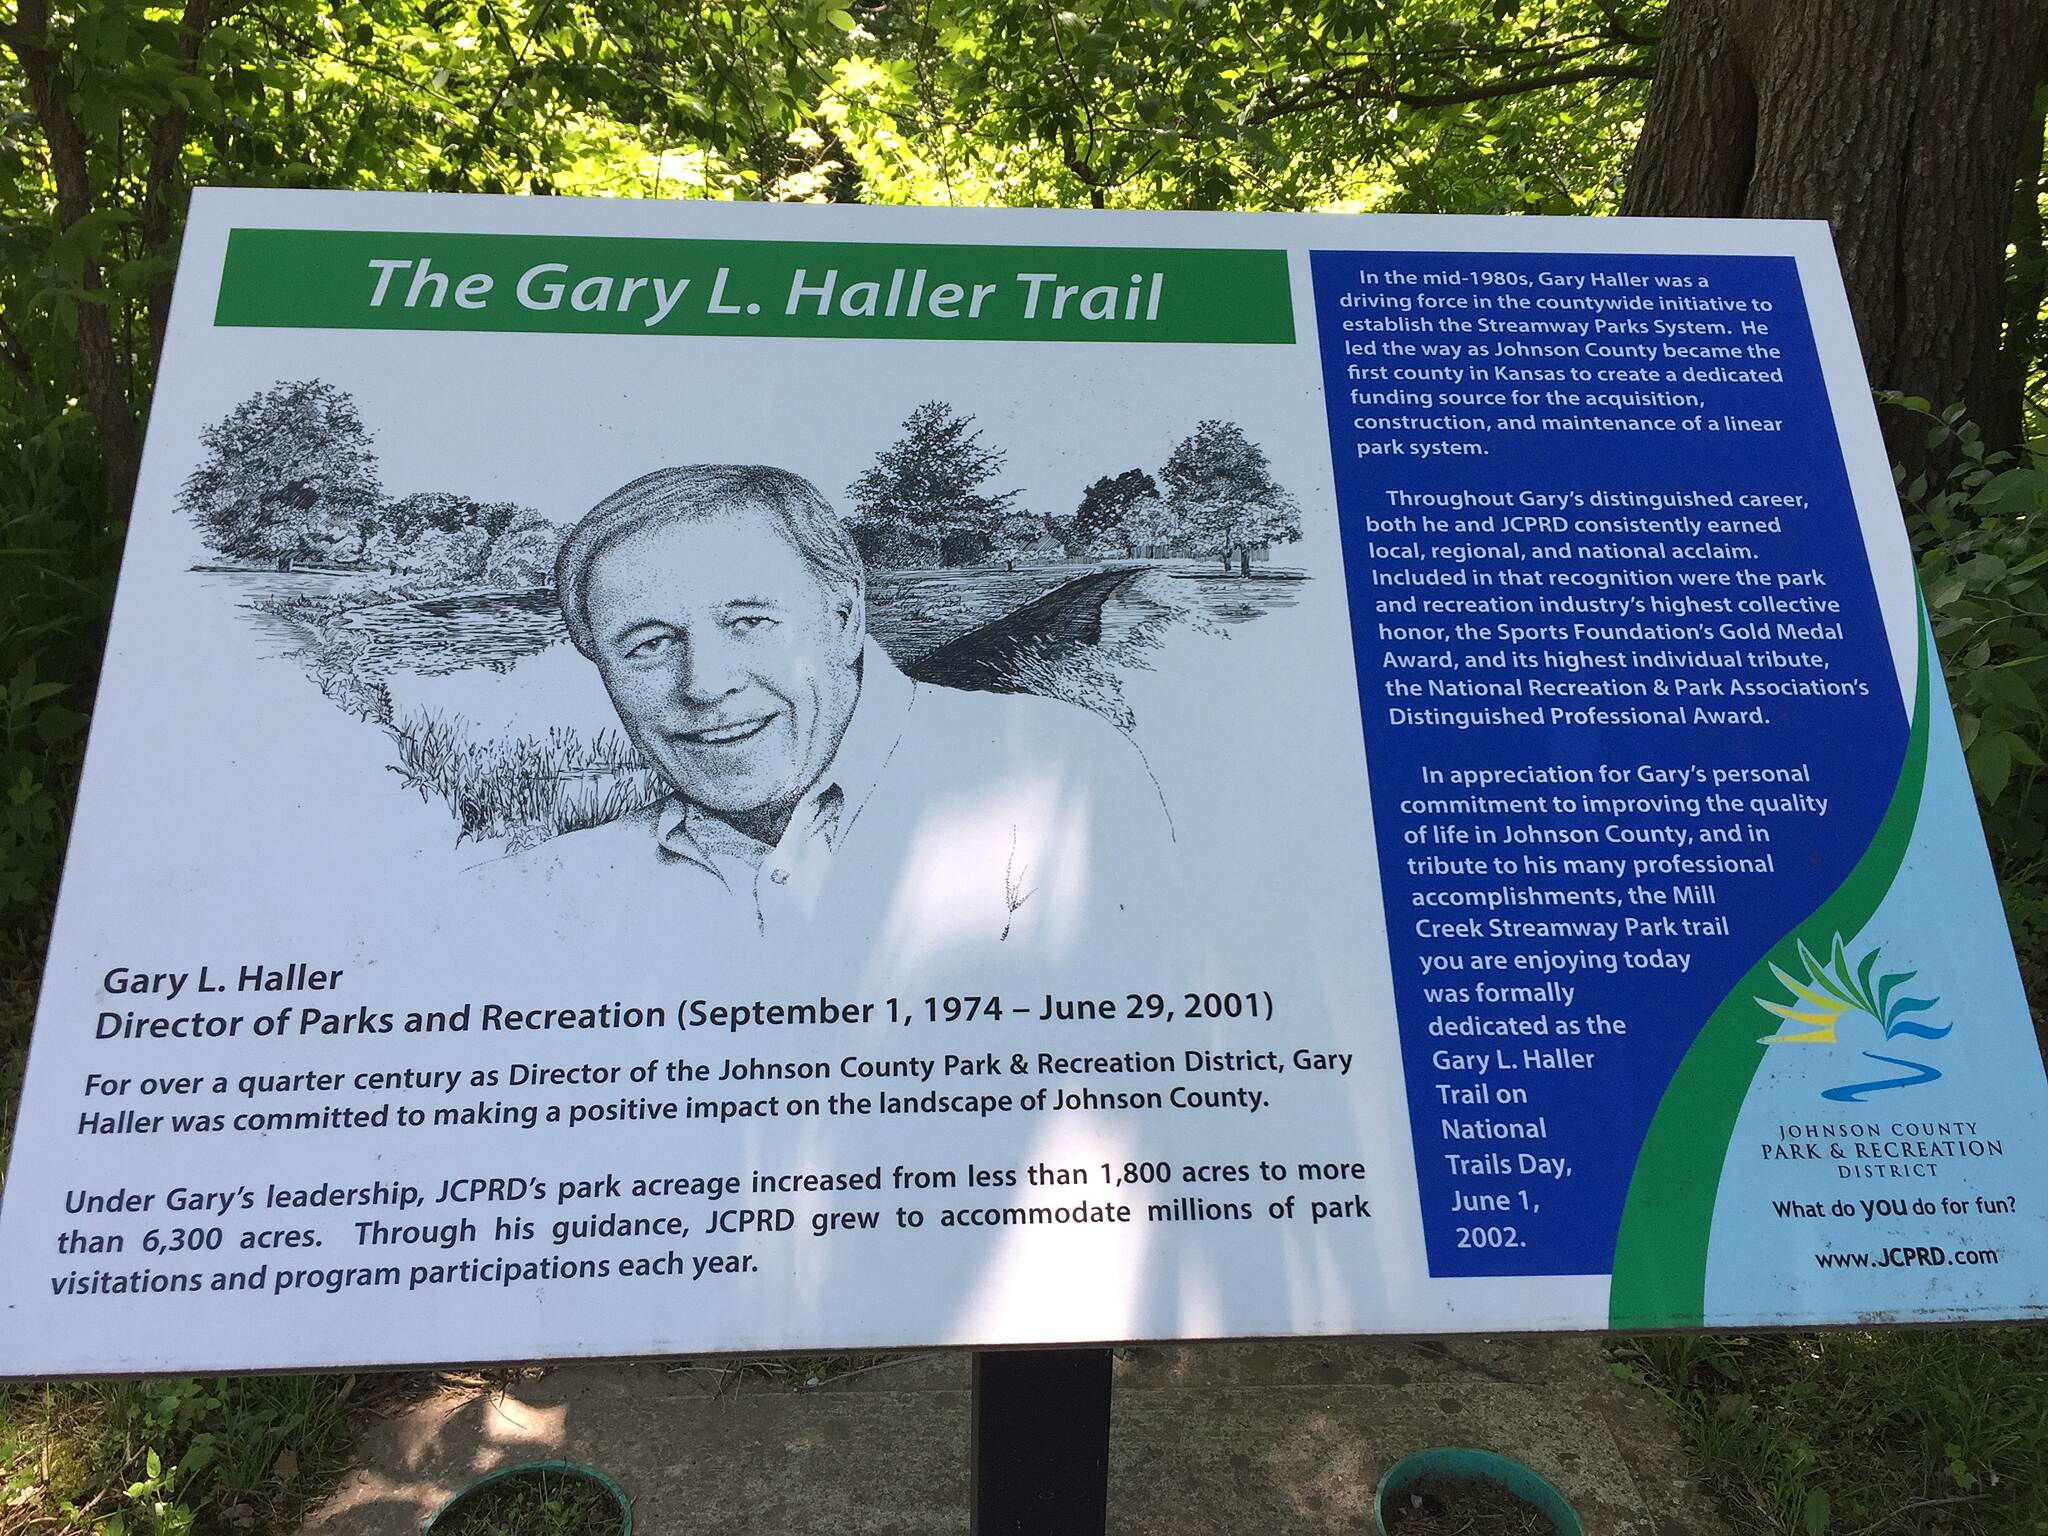 Gary L. Haller Trail Trail sign Detailing the work of Gary Haller